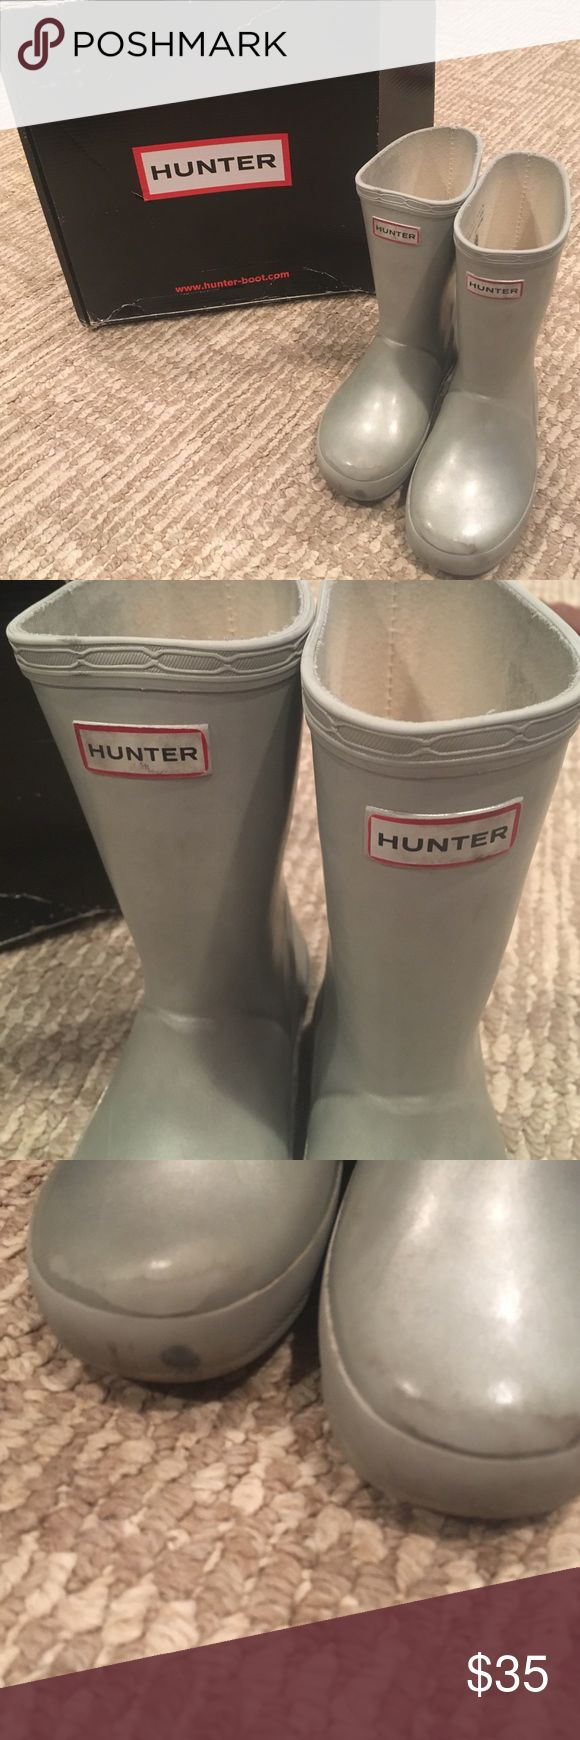 KIDS HUNTER BOOTS SILVER GREY METALLIC COLOR Pre loved kids first metallic silver grey hunter boots. Have some minor scudding as shown in photo - Price reflects flaws. Box shows it's U.K. Size 10 - USA size 12 girl  or size 11 boy! have been worn but are still in good condition- no holes or rips . Follow for deals bundle for discounts Hunter Boots Shoes Rain & Snow Boots